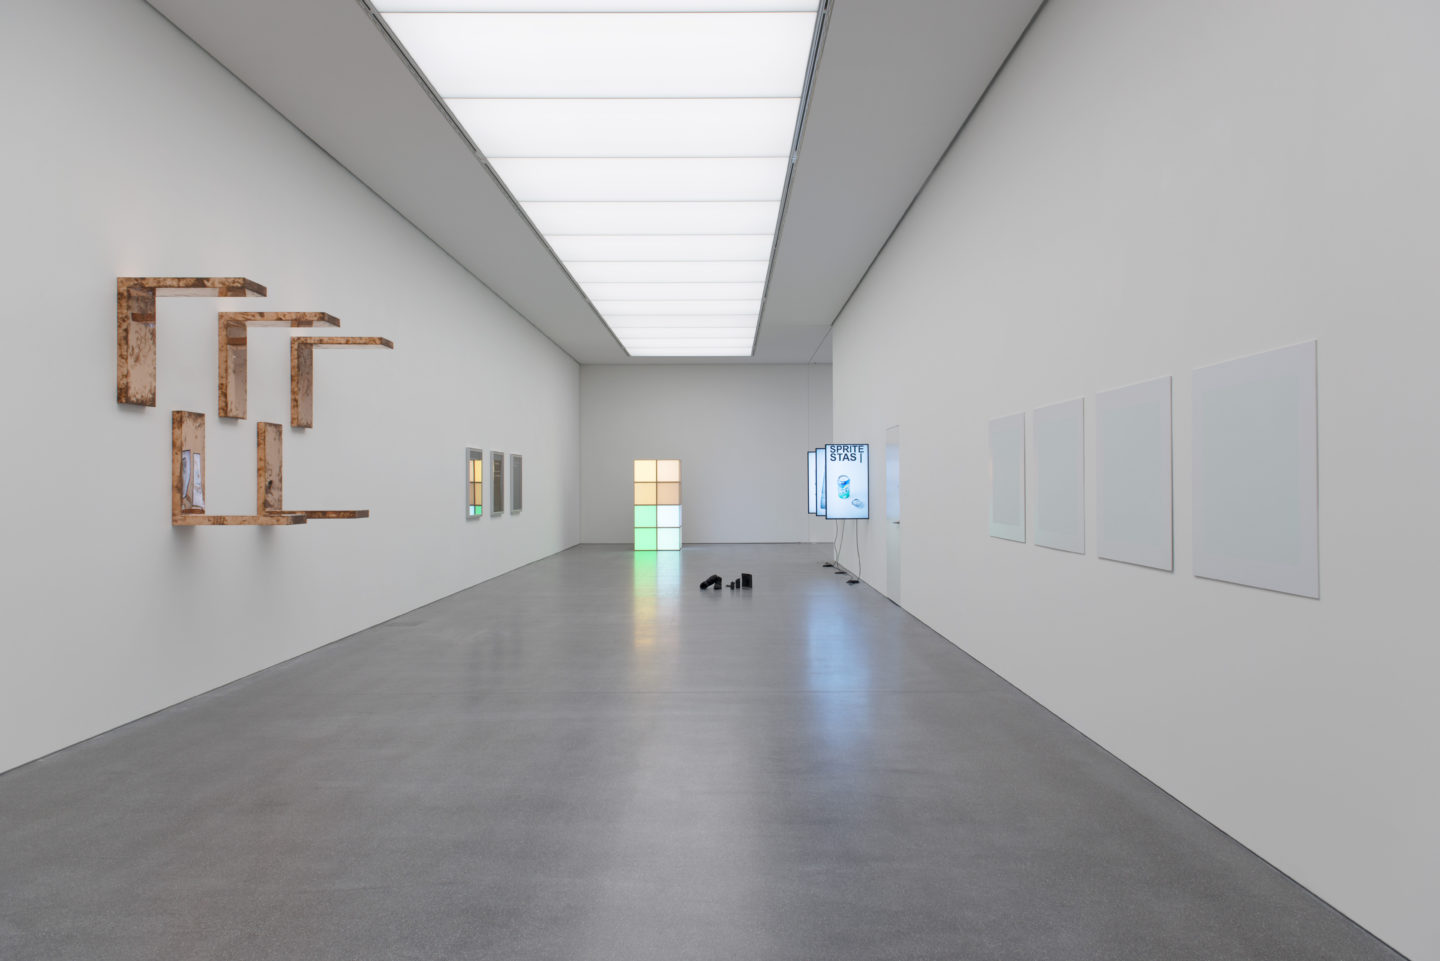 Exhibition View «ALWAYS DIFFERENT, ALWAYS THE SAME» with Walead Beshty, Bethan Huws, Angela Bulloch, !Mediengruppe Bitnik, Rémy Zaugg (f.l.t.r.) / Courtesy: the artists and Bündner Kunstmuseum, Chur